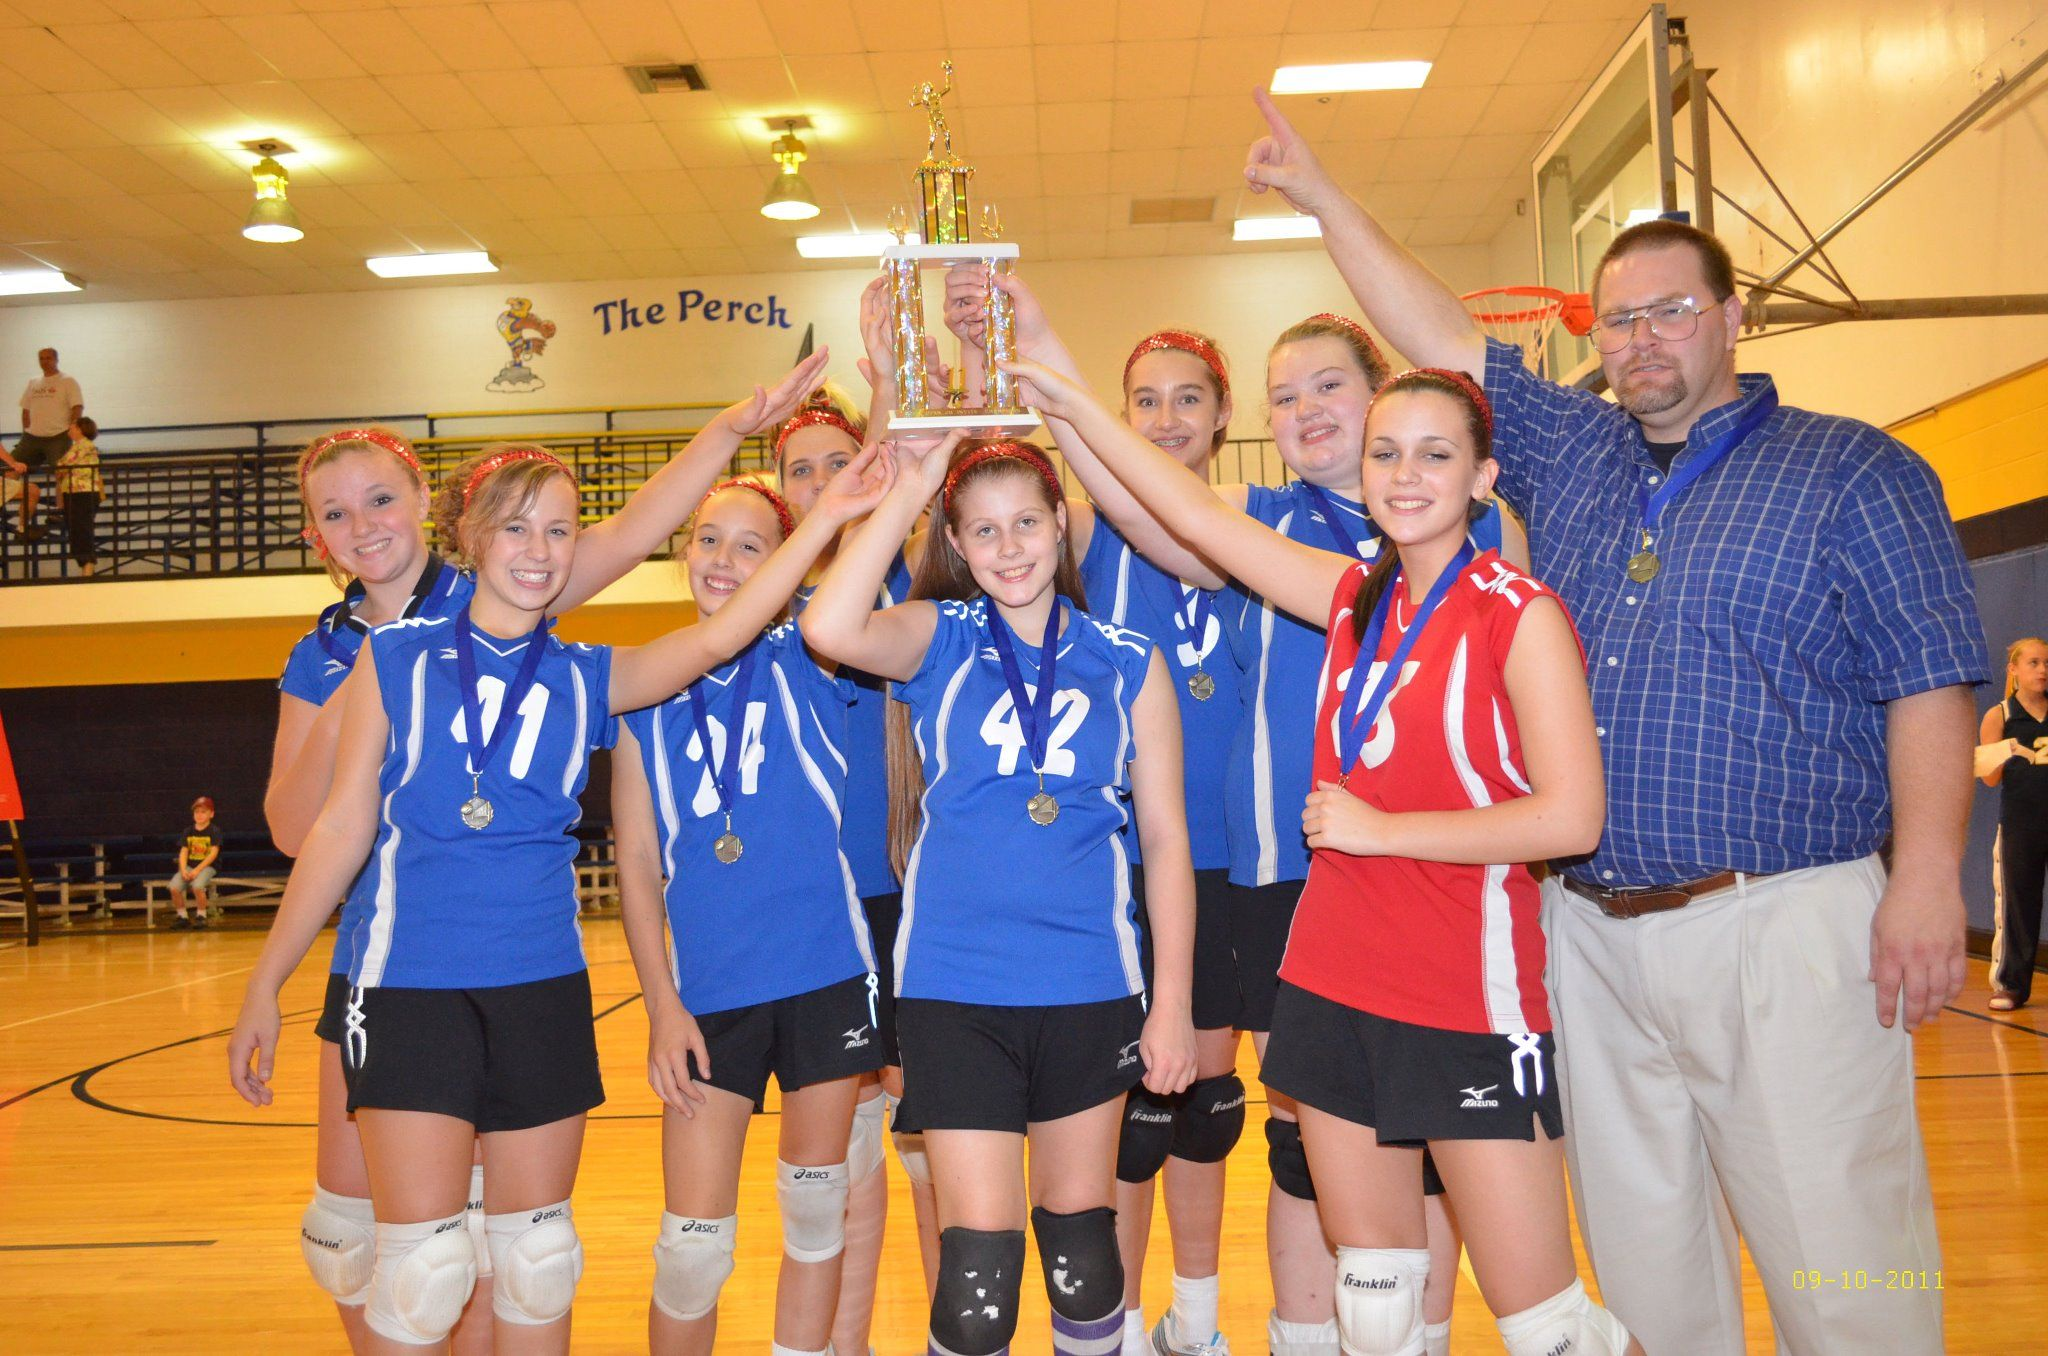 2011 Cprs Tournament Champions Volleyball Team Volleyball Champion